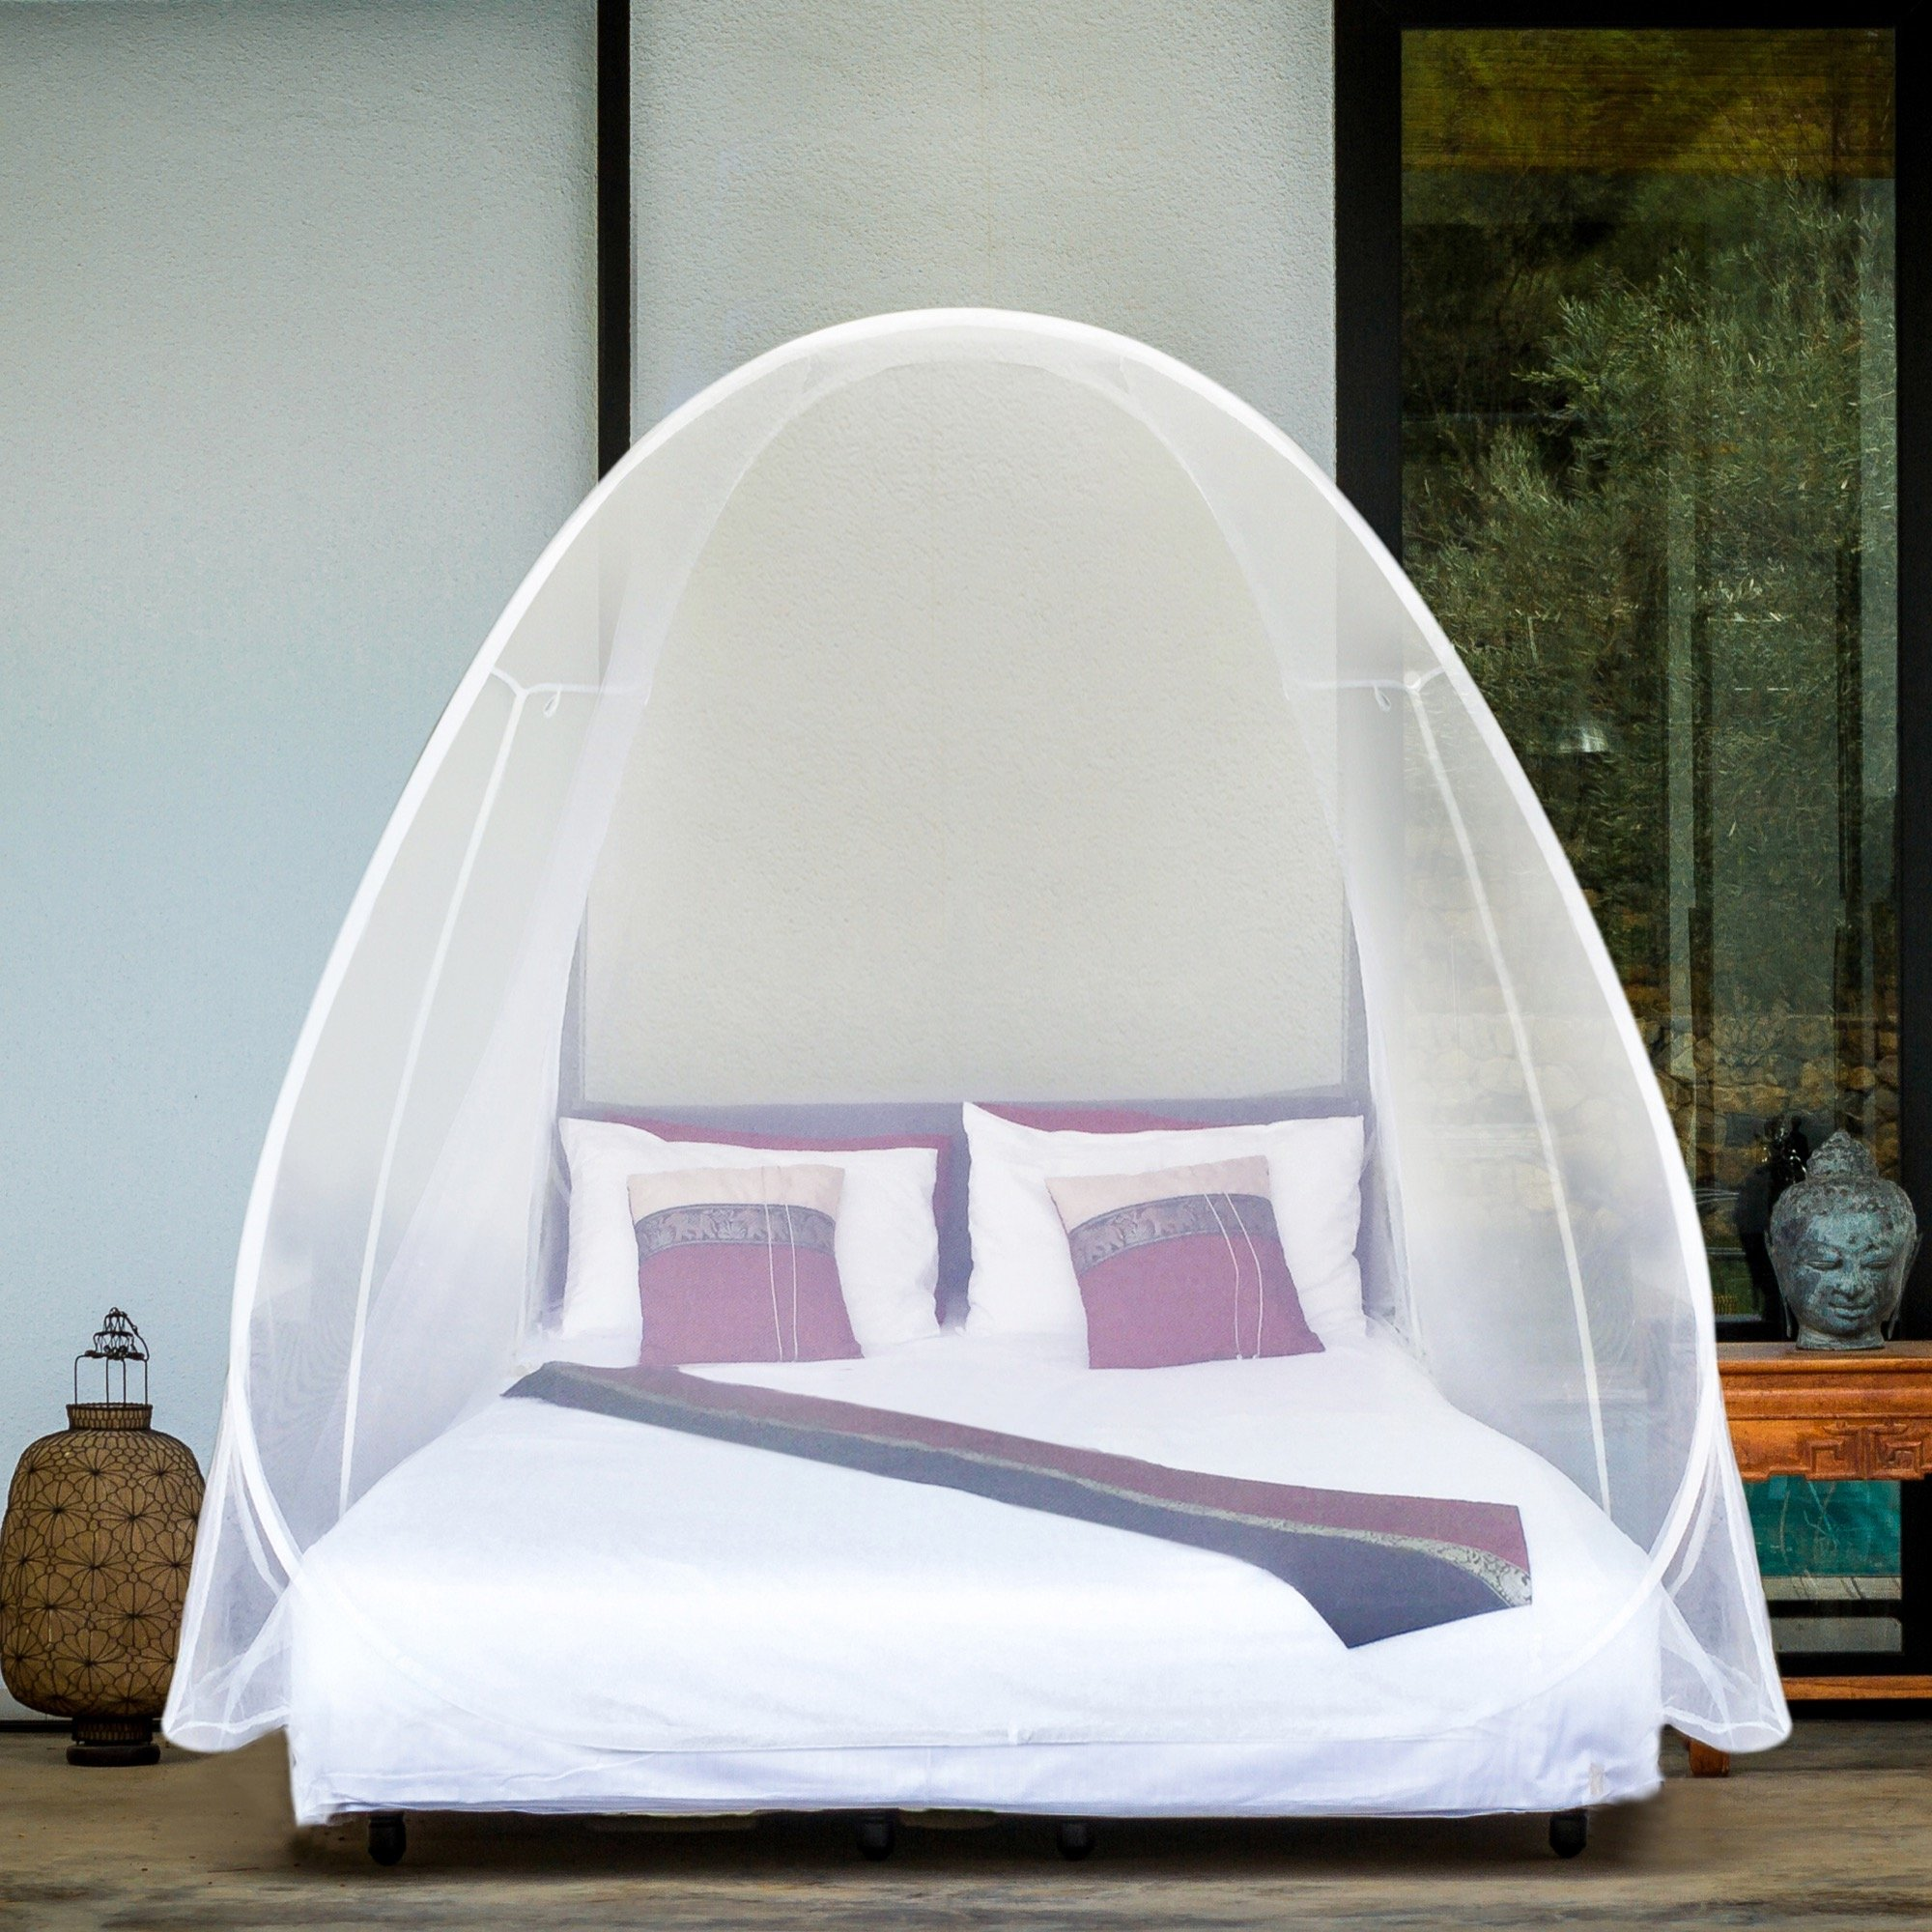 POP UP MOSQUITO NET Tent Extra Large for Twin to King Size Bed, Canopy for Beds, Folding Design with Bottom, Quick & Easy Installation, Insect Fly Screen, No Chemicals, 2 Openings & Carry Bag